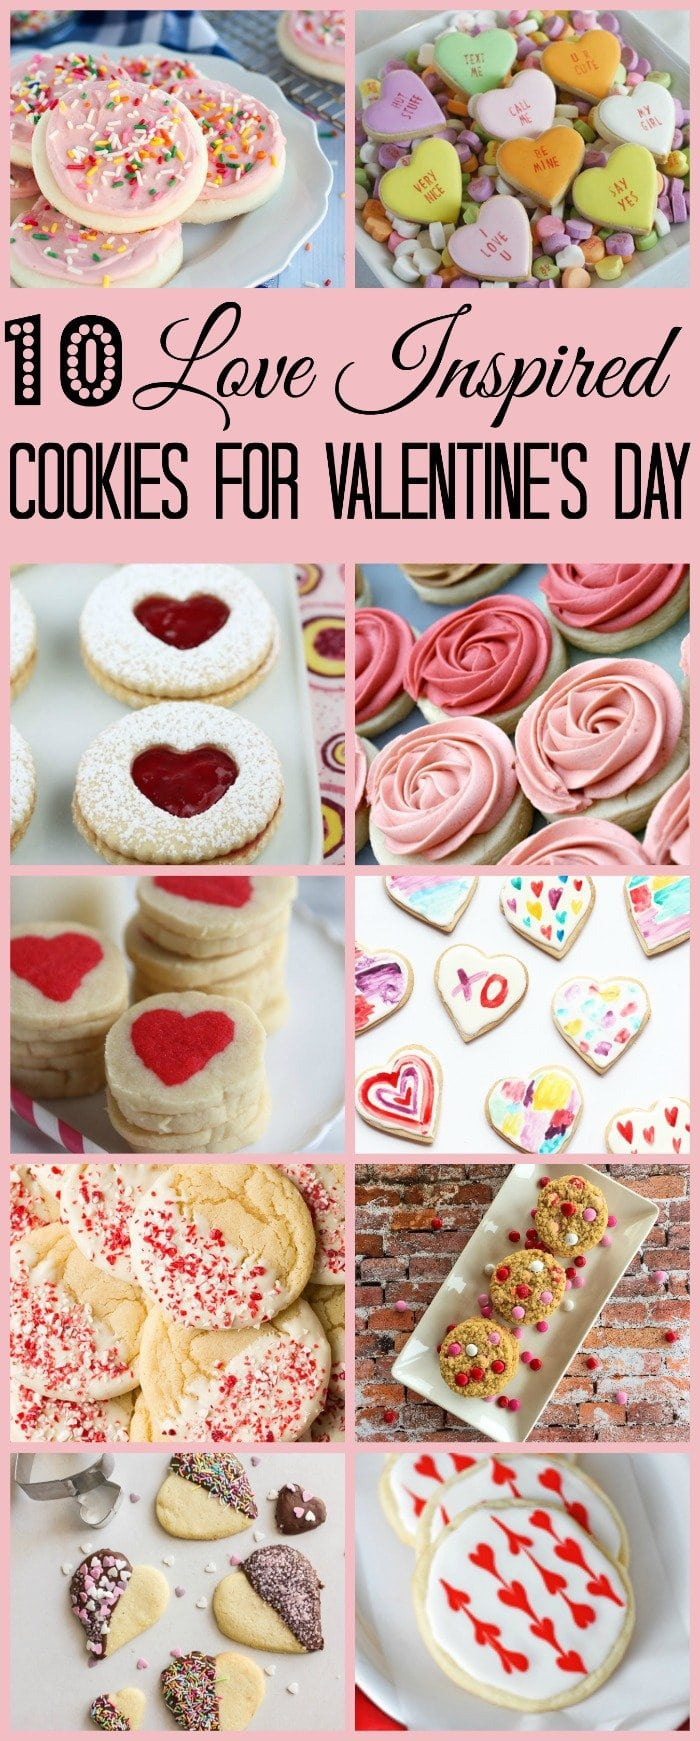 10 Love Inspired Cookies for Valentine